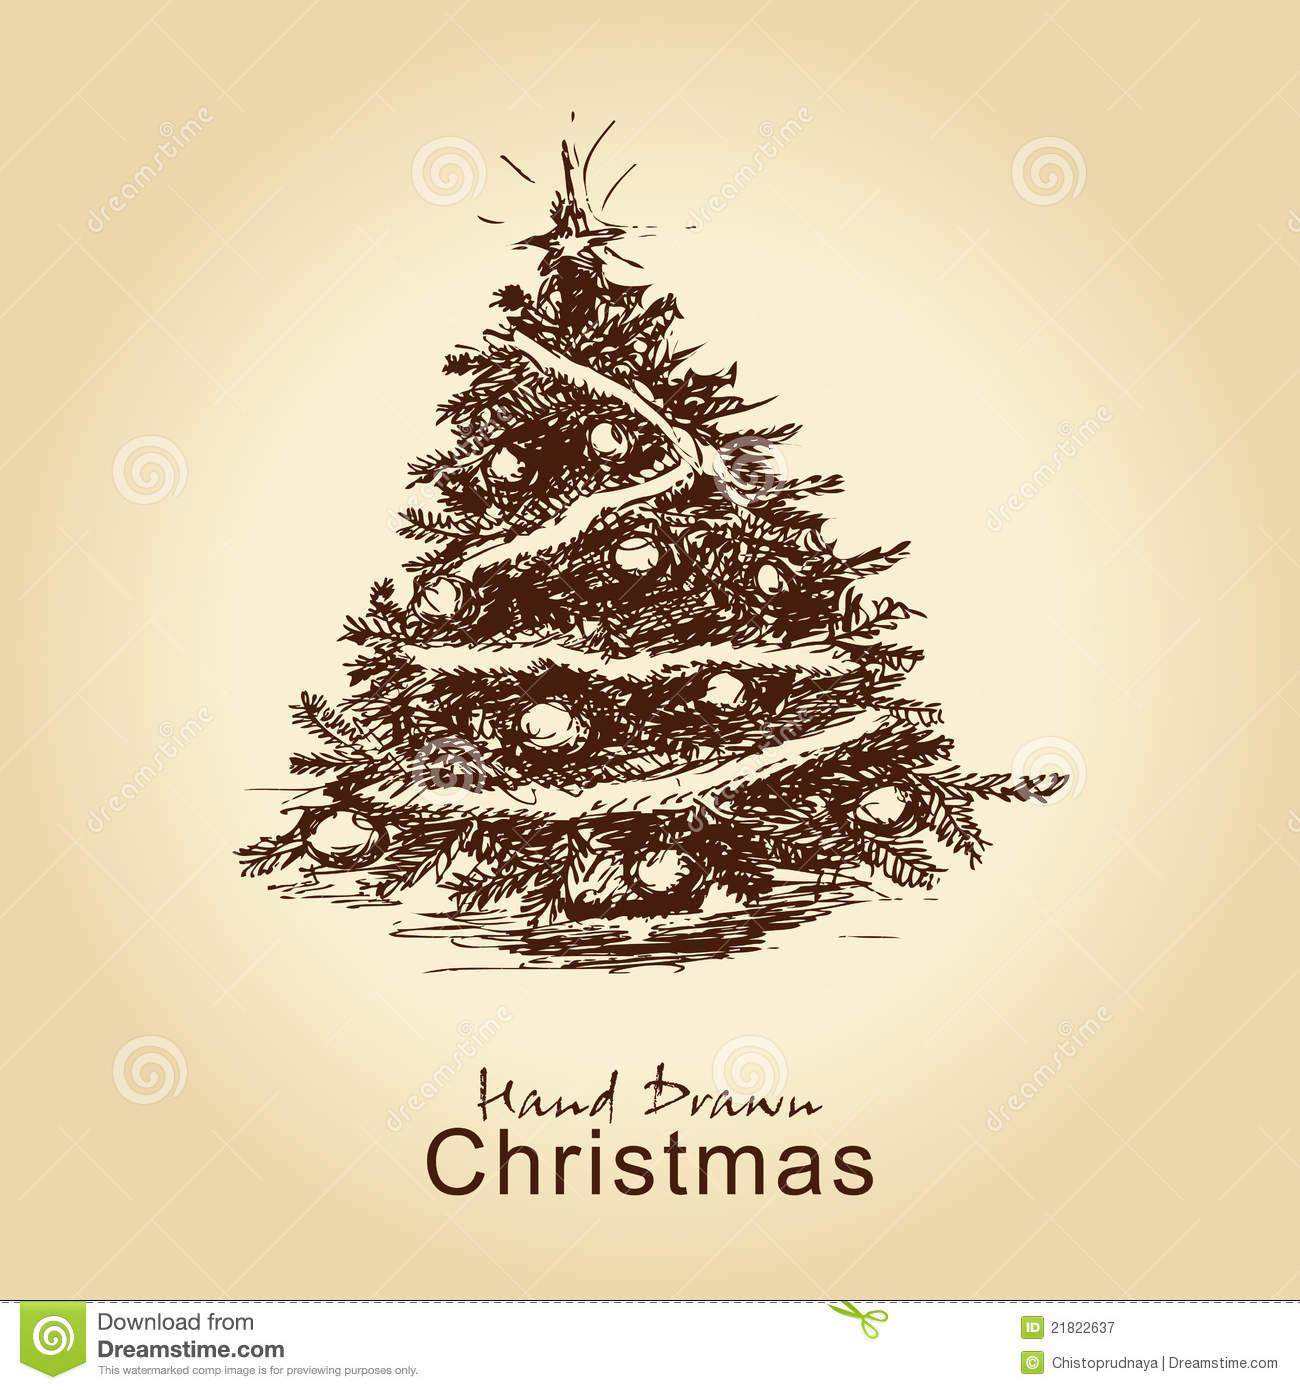 Old Fashioned Christmas Stock Illustrations 3 811 Old Fashioned Christmas Stock Illustrations Vectors Clipart Dreamstime